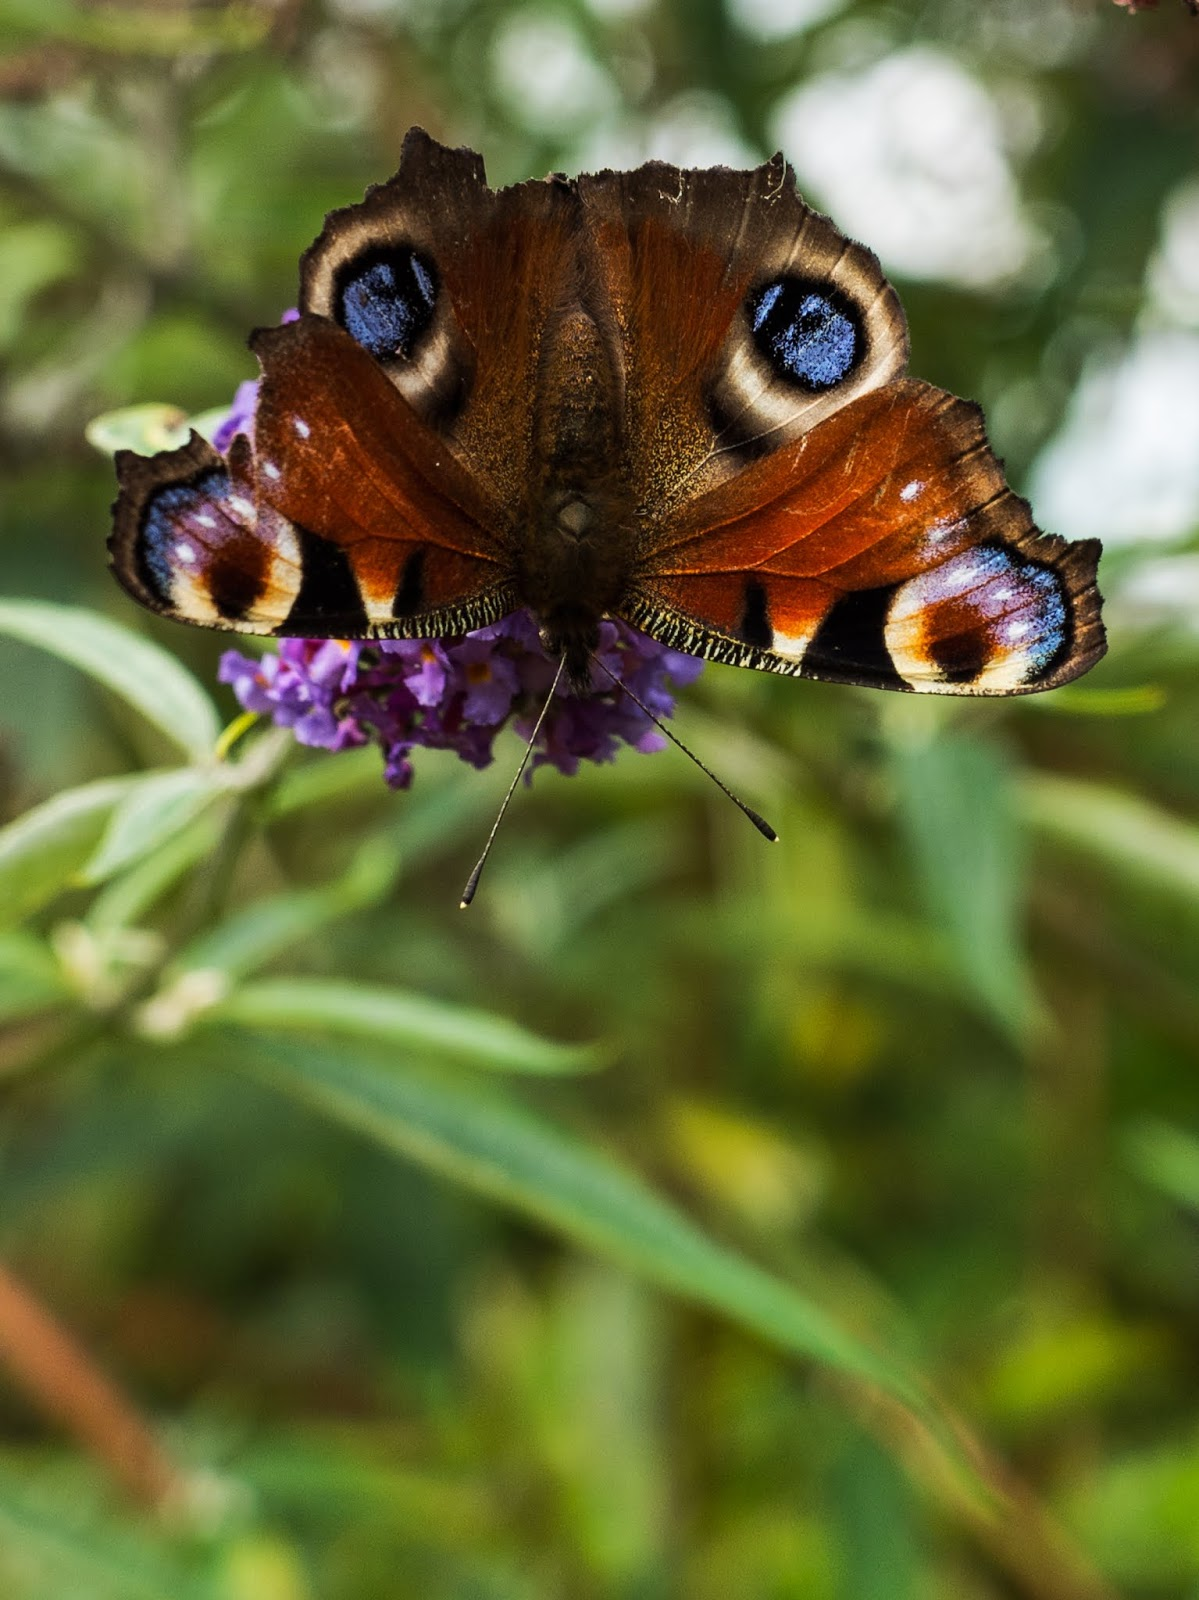 An upside-down Peacock Butterfly on a Buddleia bush sipping nectar.